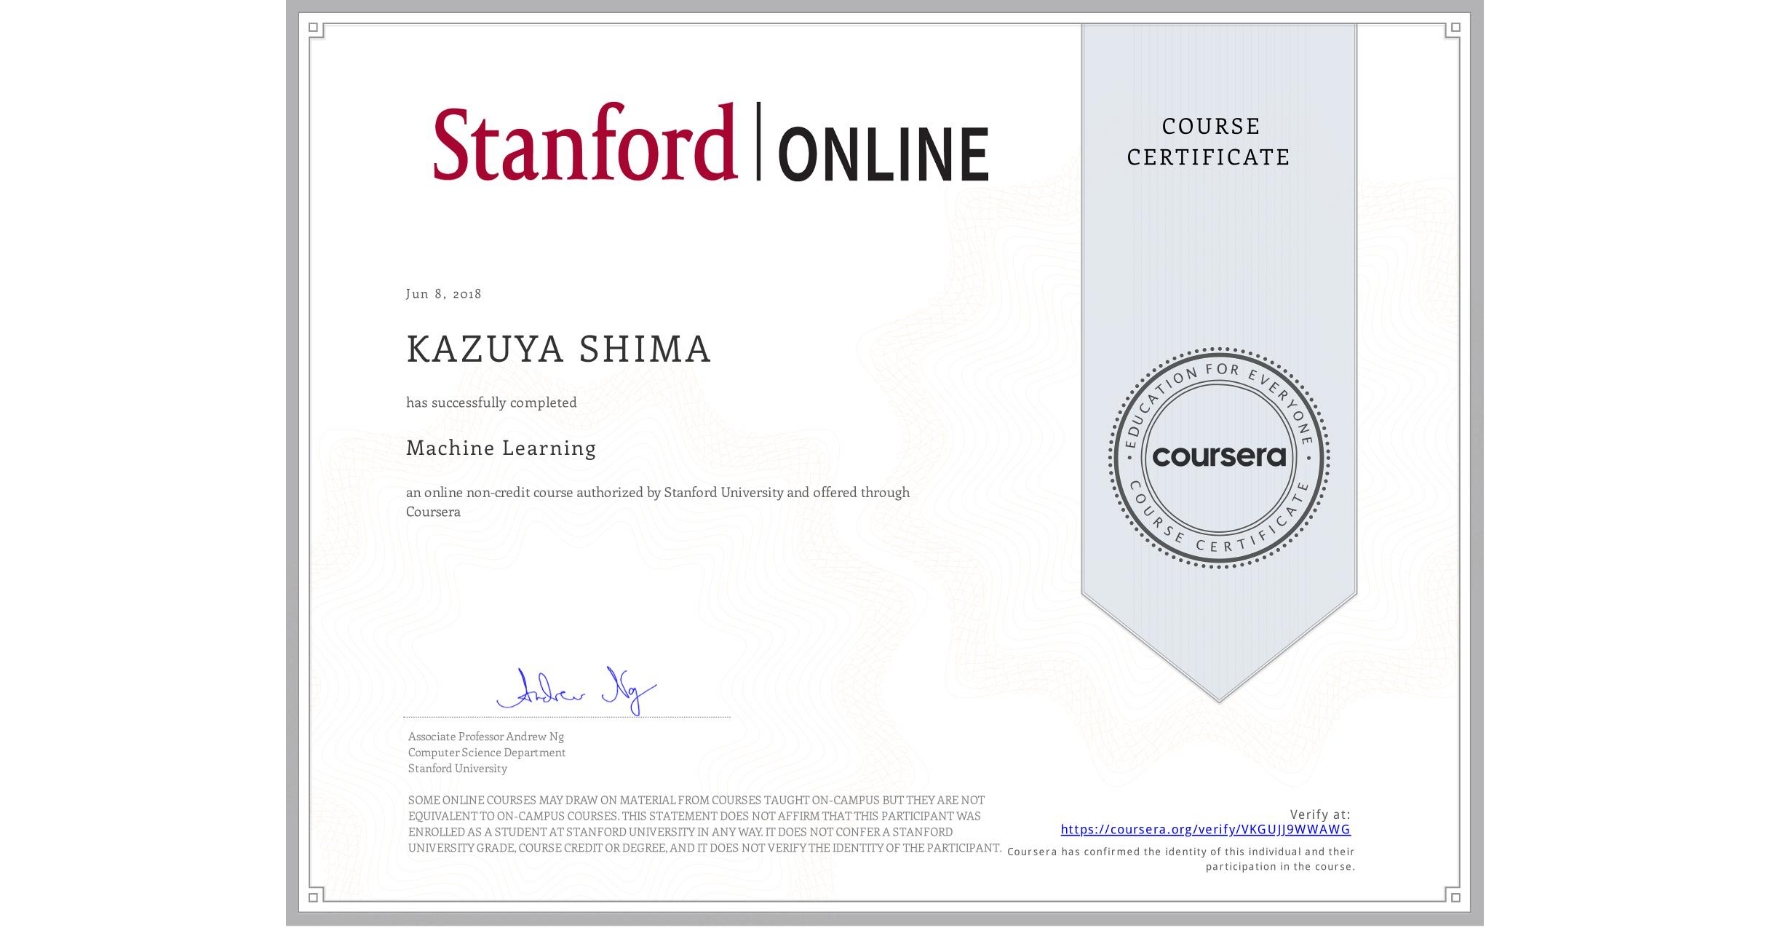 View certificate for KAZUYA SHIMA, Machine Learning, an online non-credit course authorized by Stanford University and offered through Coursera